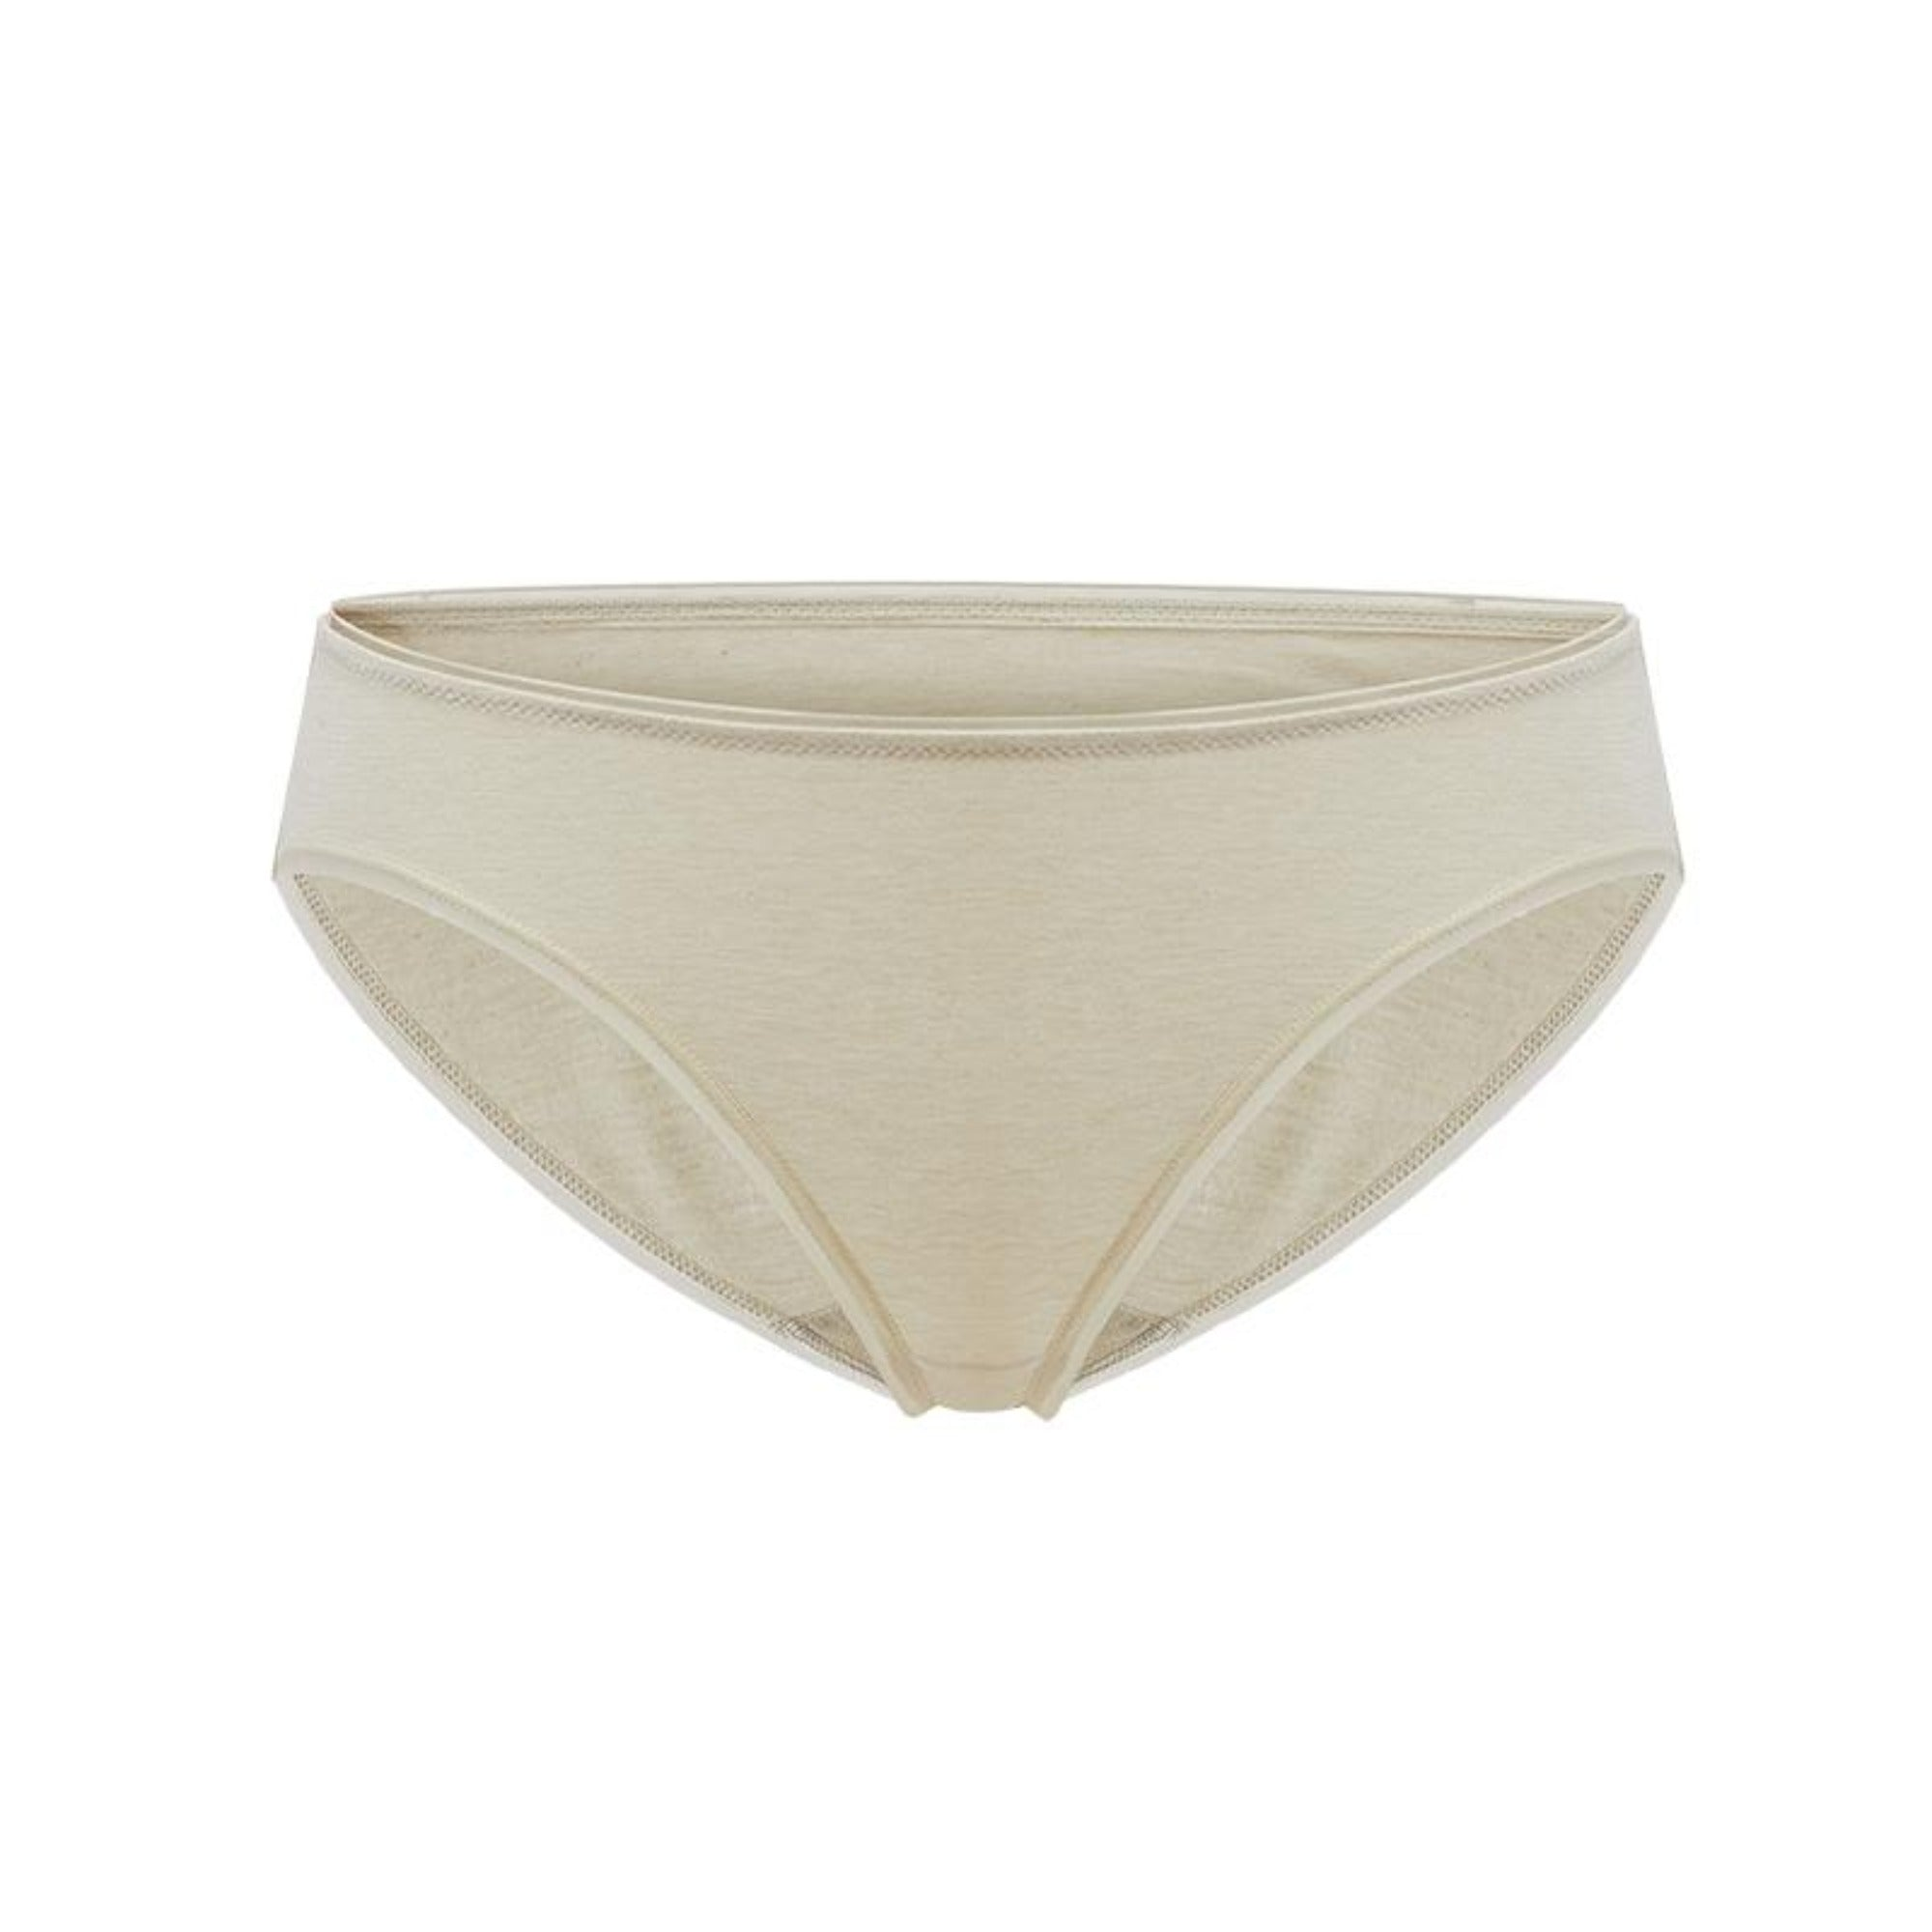 NEIWAI Hollow Stitching Low Waist Briefs in Cress Green